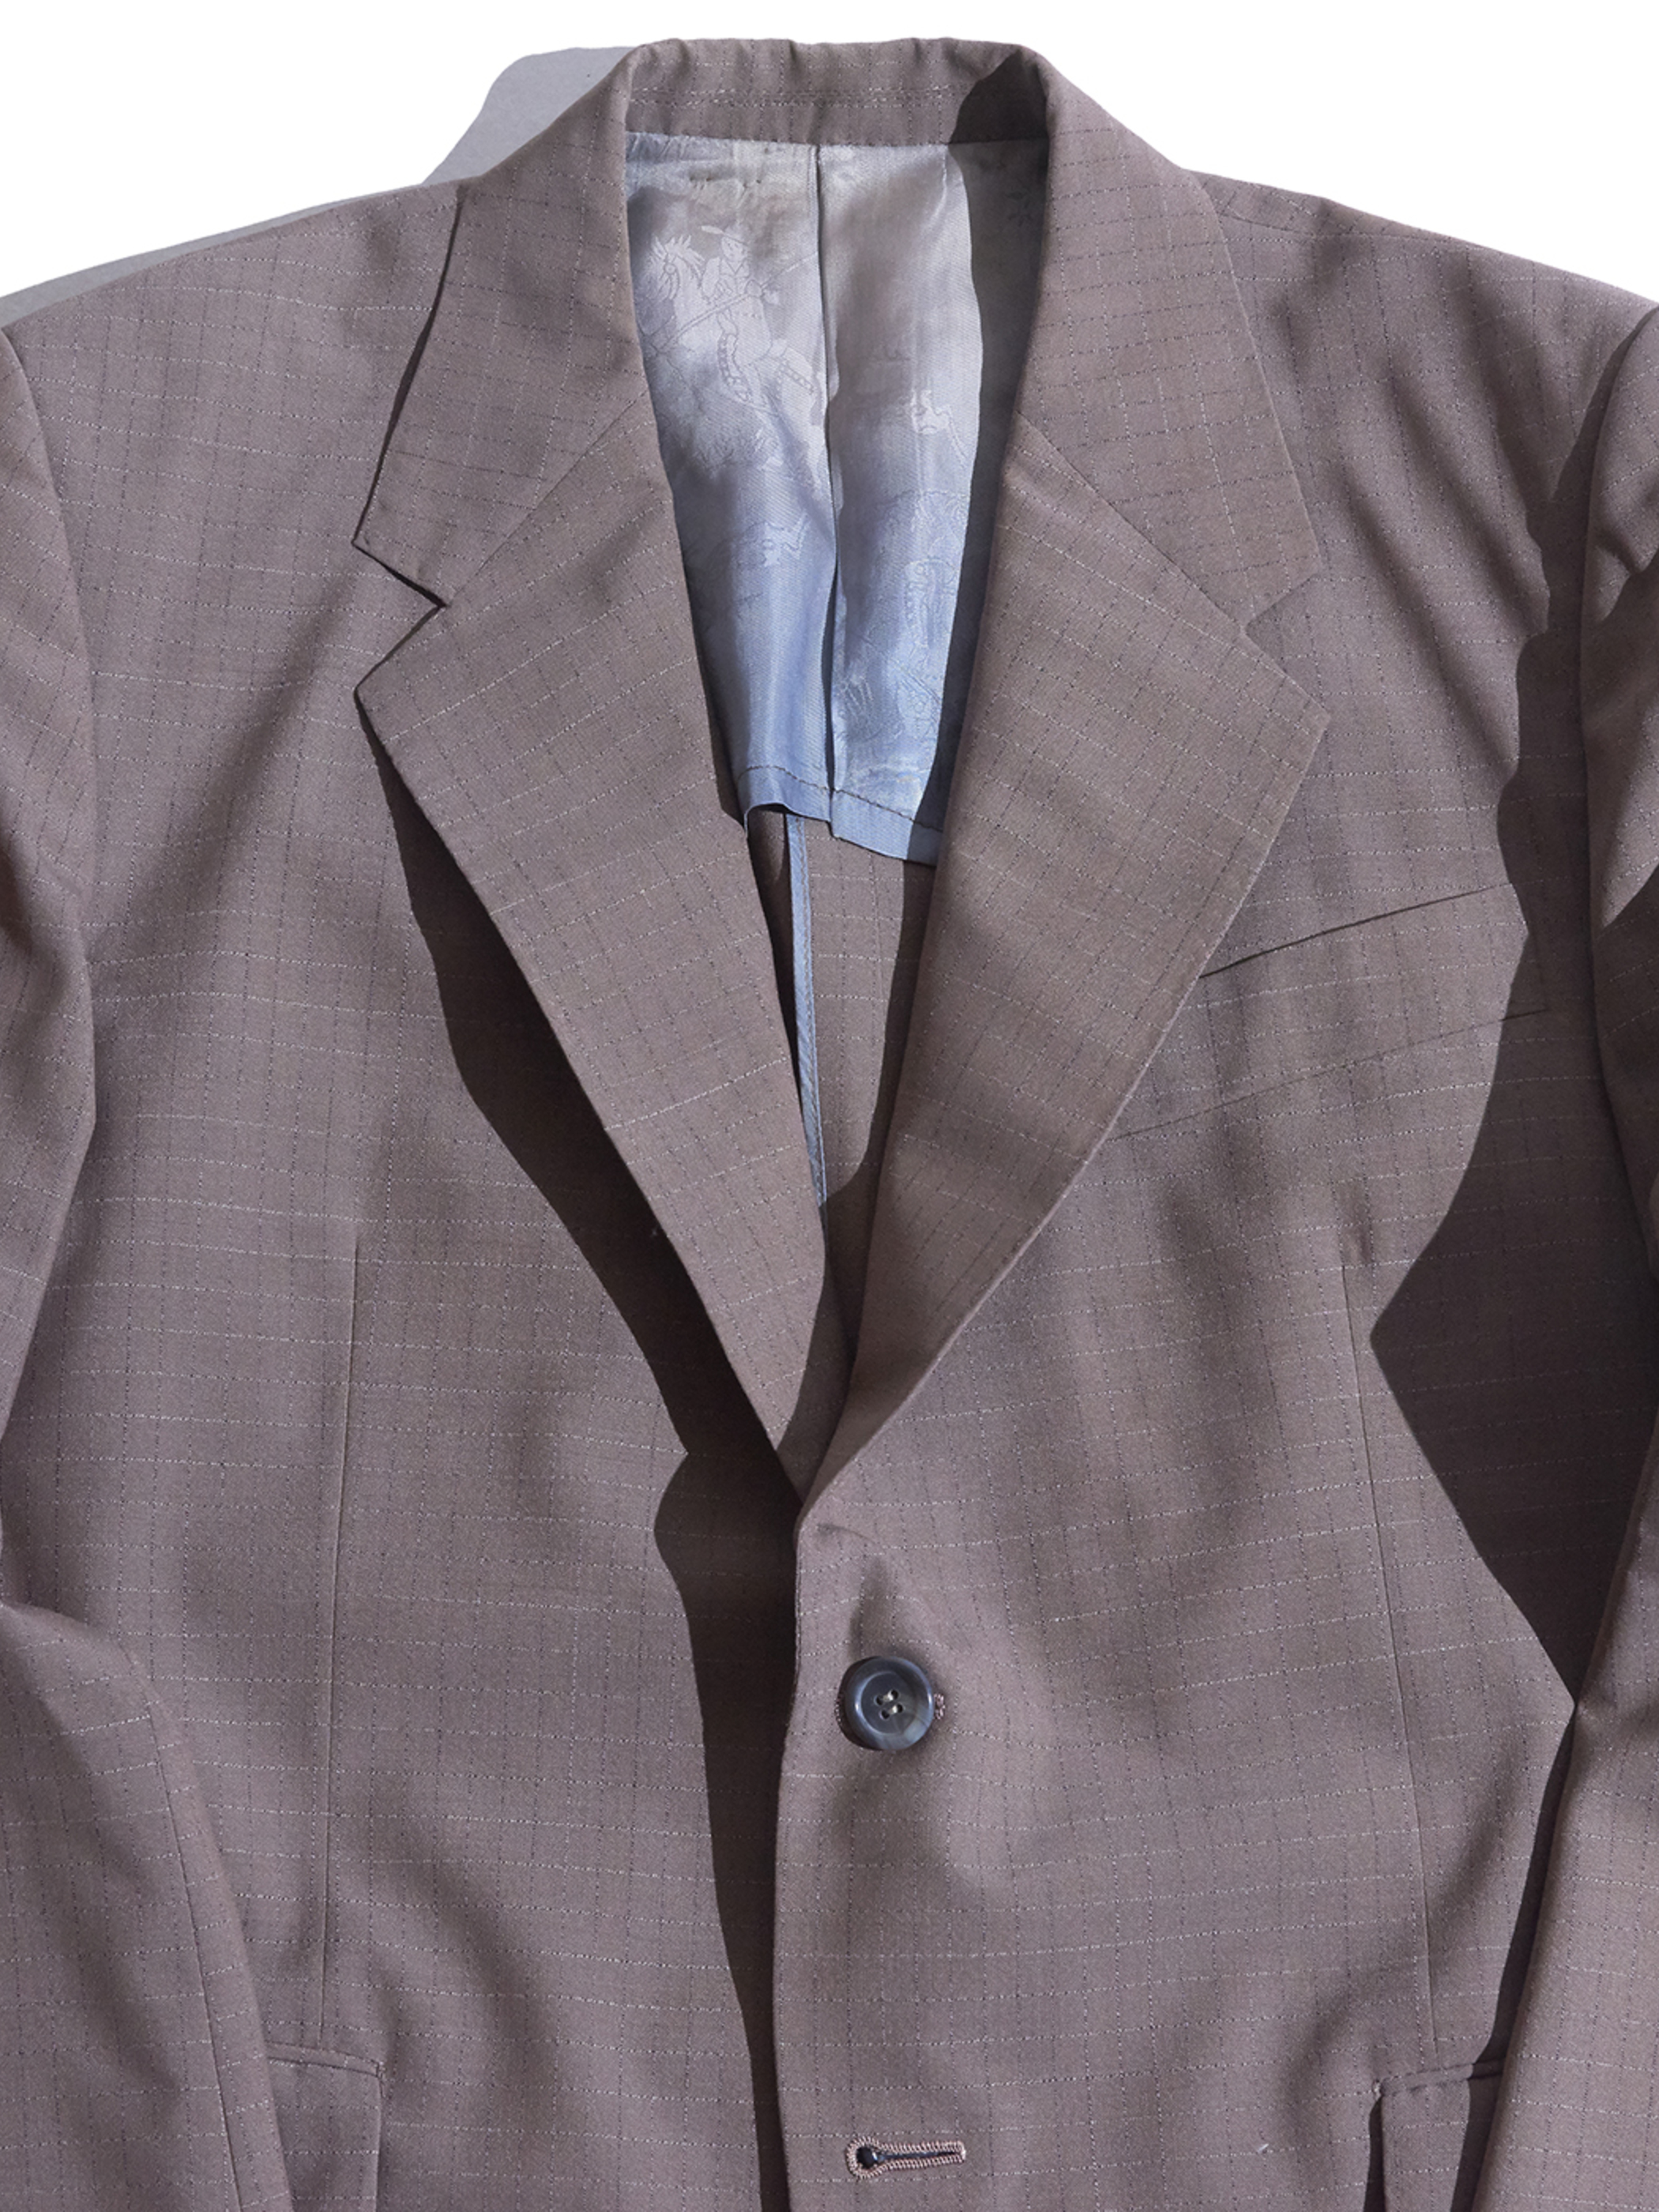 """1960s """"PLAY BOY"""" 2piece suits -BROWN-"""